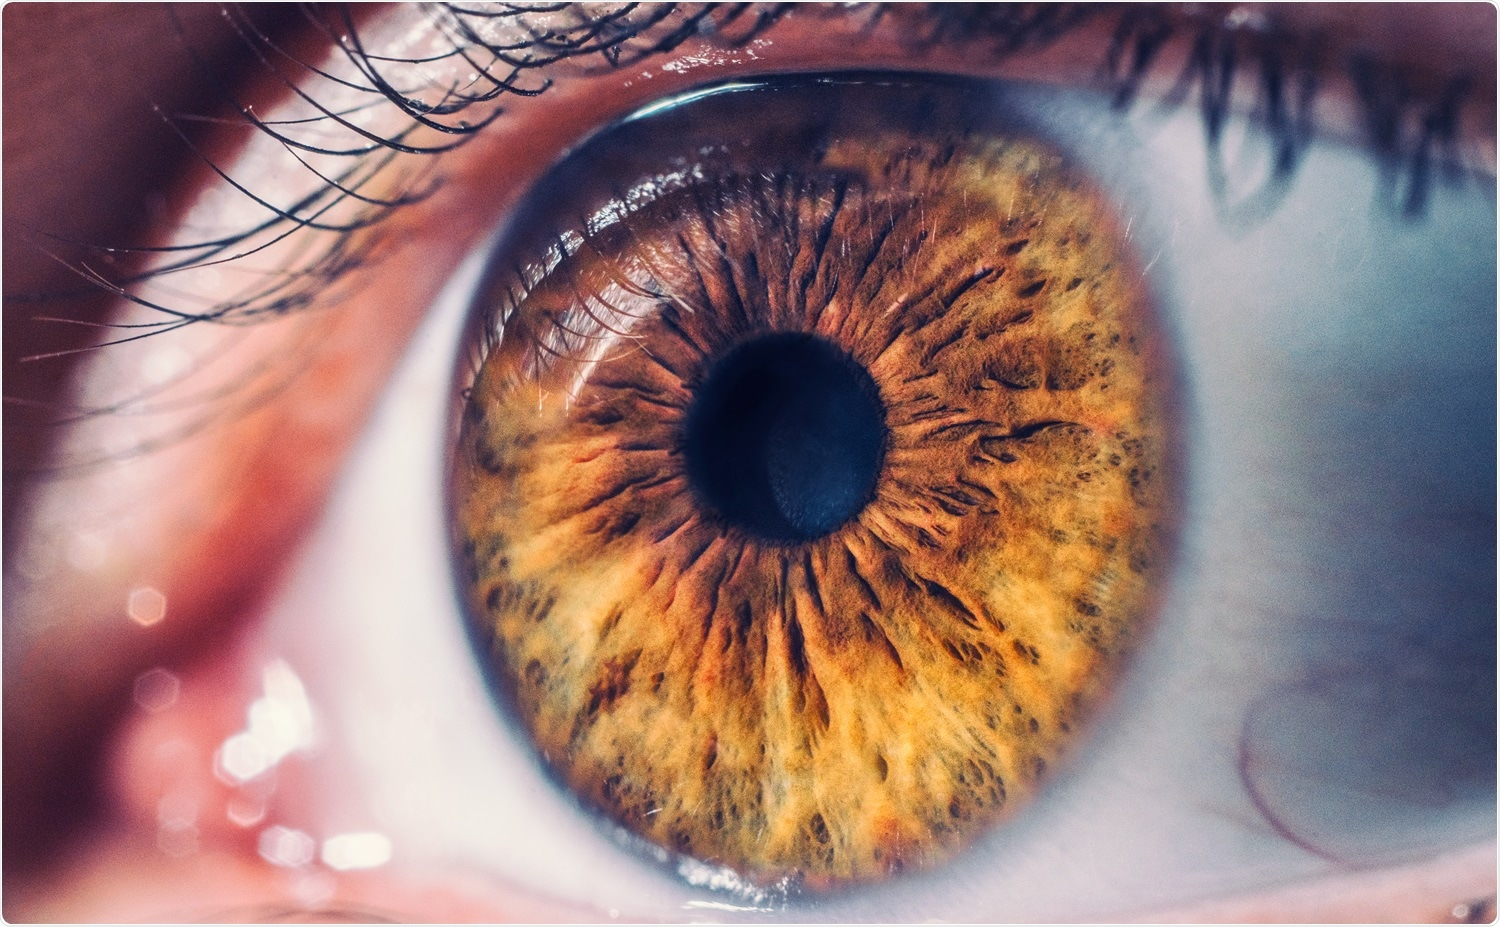 Study: SARS-CoV-2 infects and replicates in photoreceptor and retinal ganglion cells of human retinal organoids. Image Credit: hispan / Shutterstock